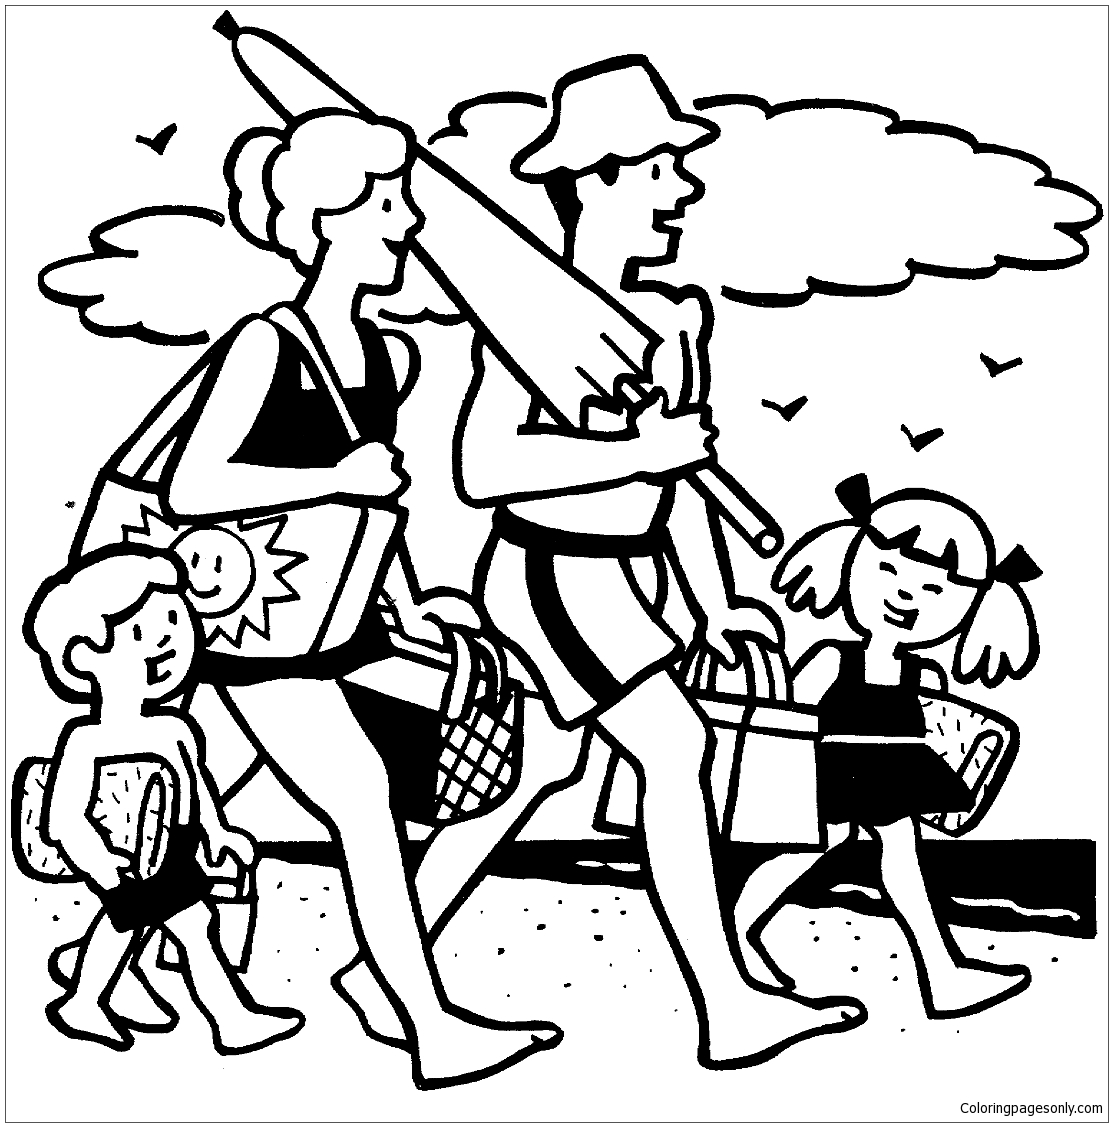 Family Beach Picnic Coloring Page Free Coloring Pages Online